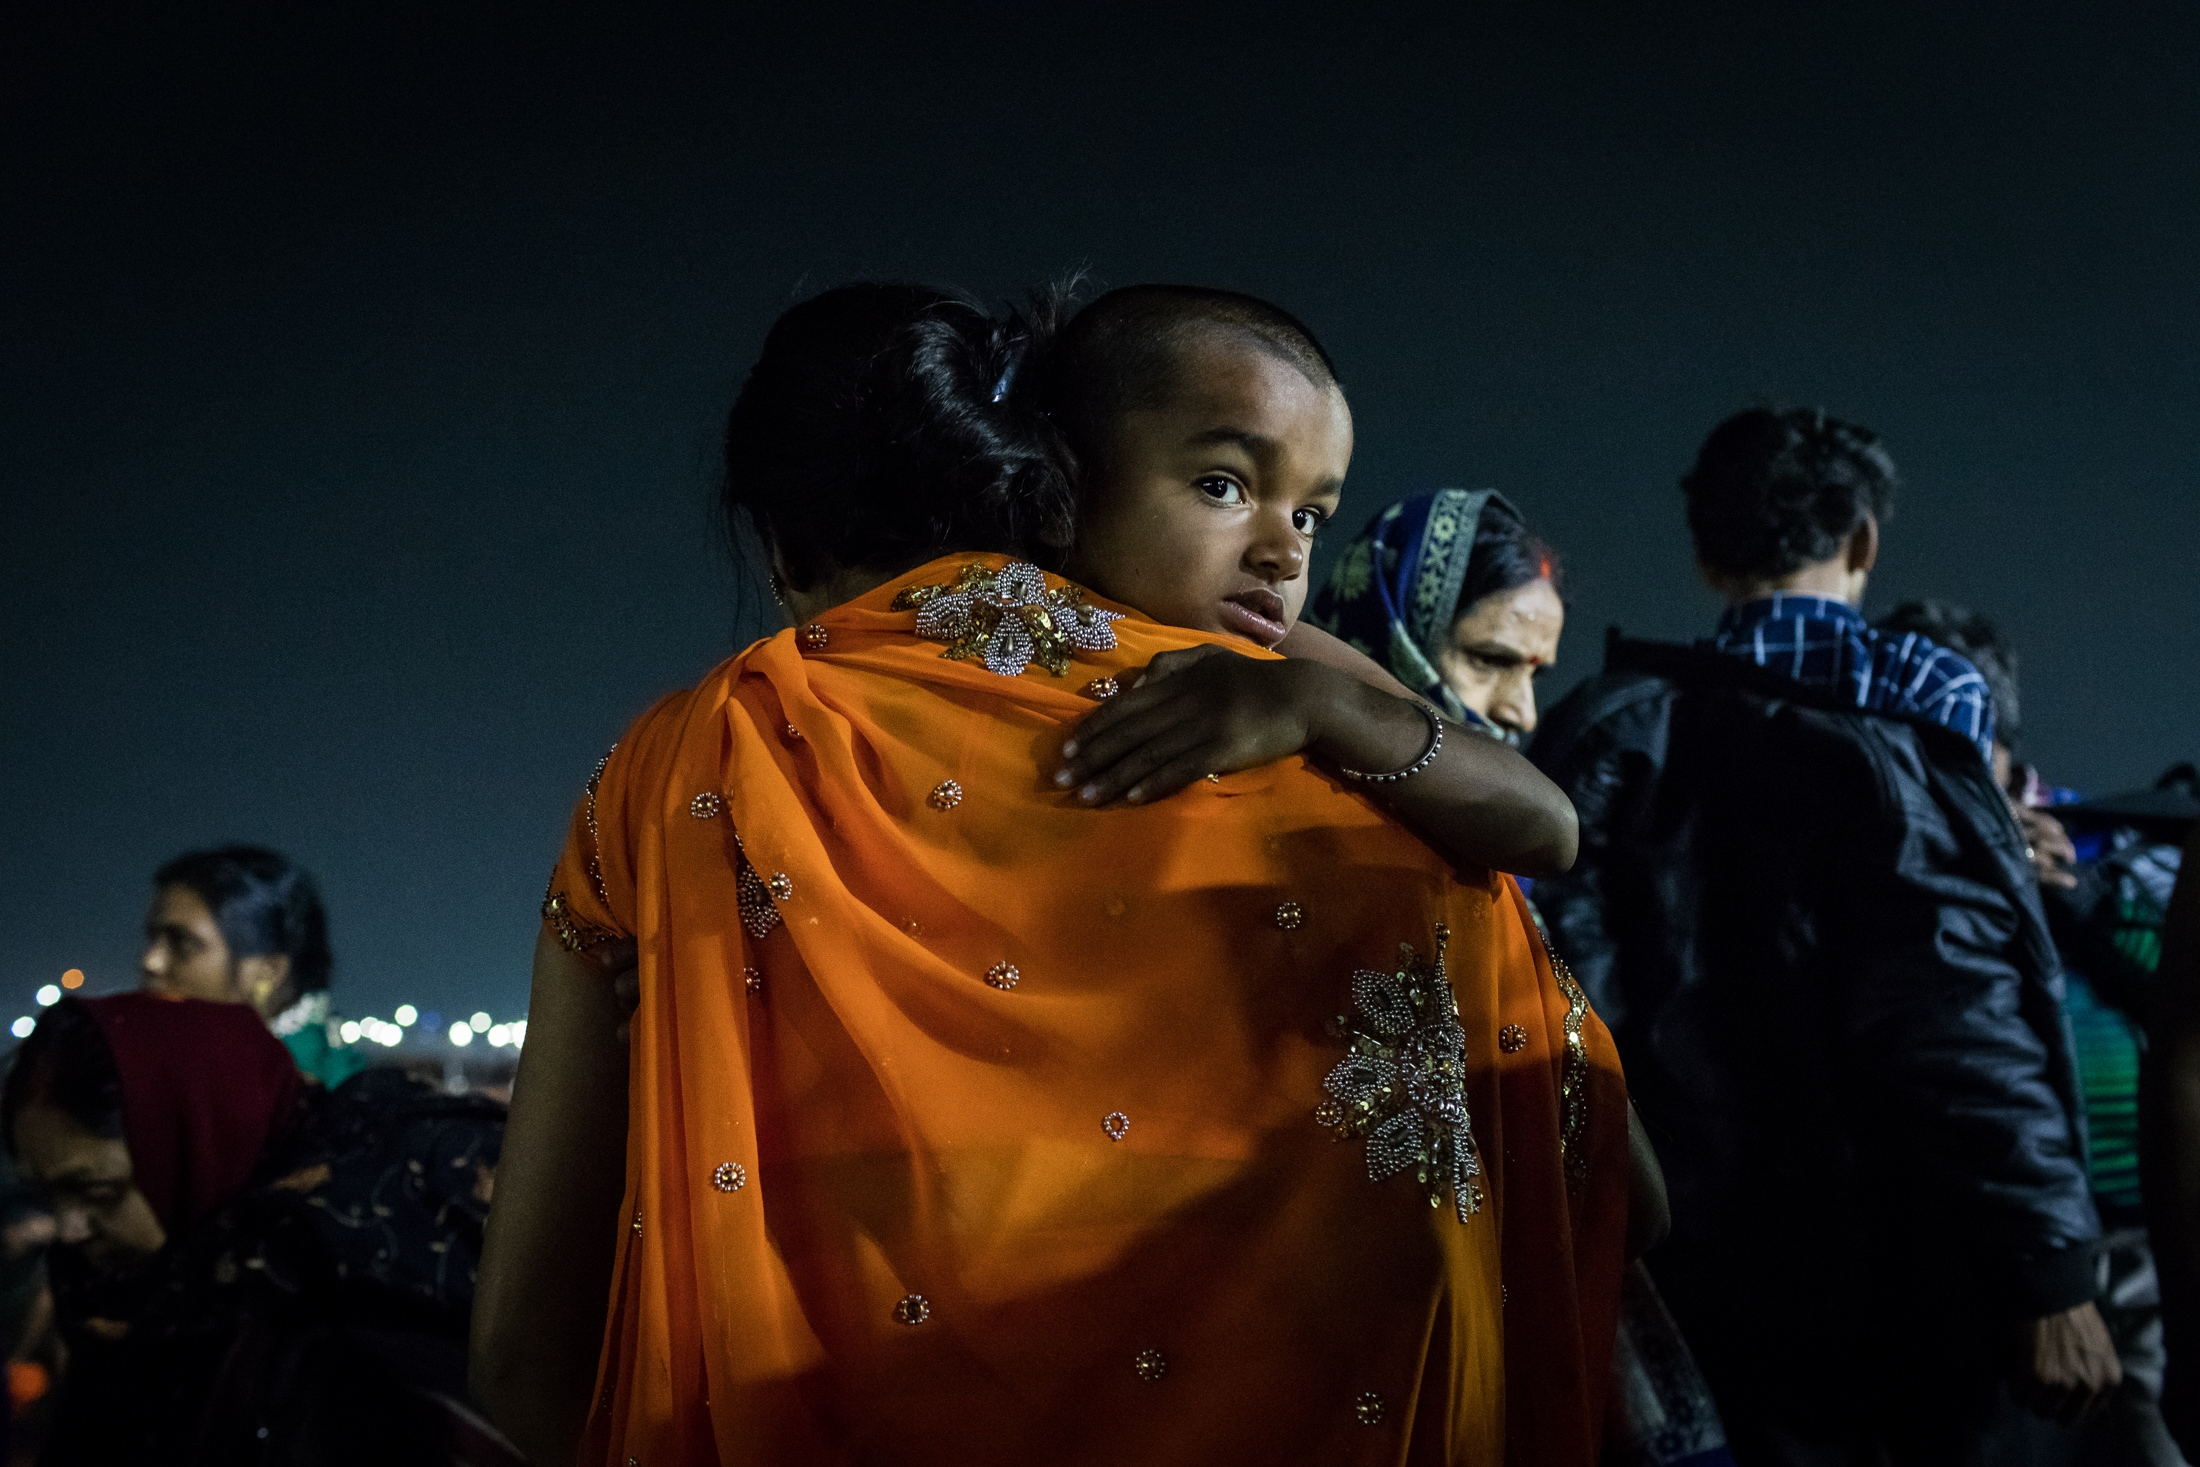 A mother carries her child to his first holy bath in a Kumbh Mela, Prayagraj, February 2019.